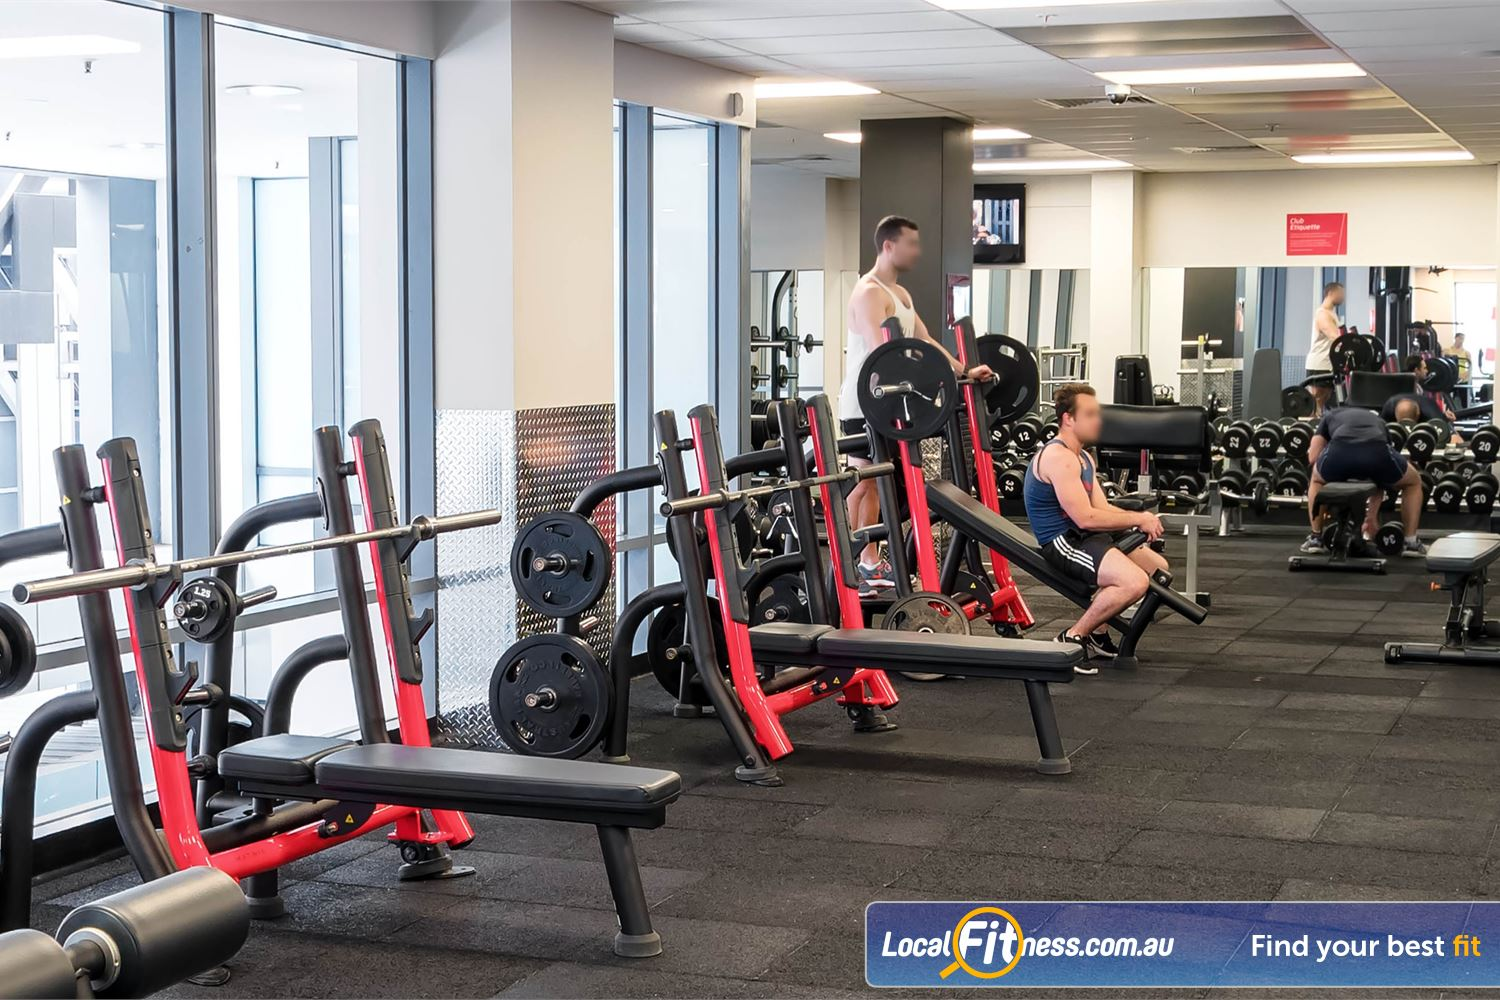 Fitness First Elizabeth Plaza North Sydney Multiple bench presses, power racks, plate loading machines and more.